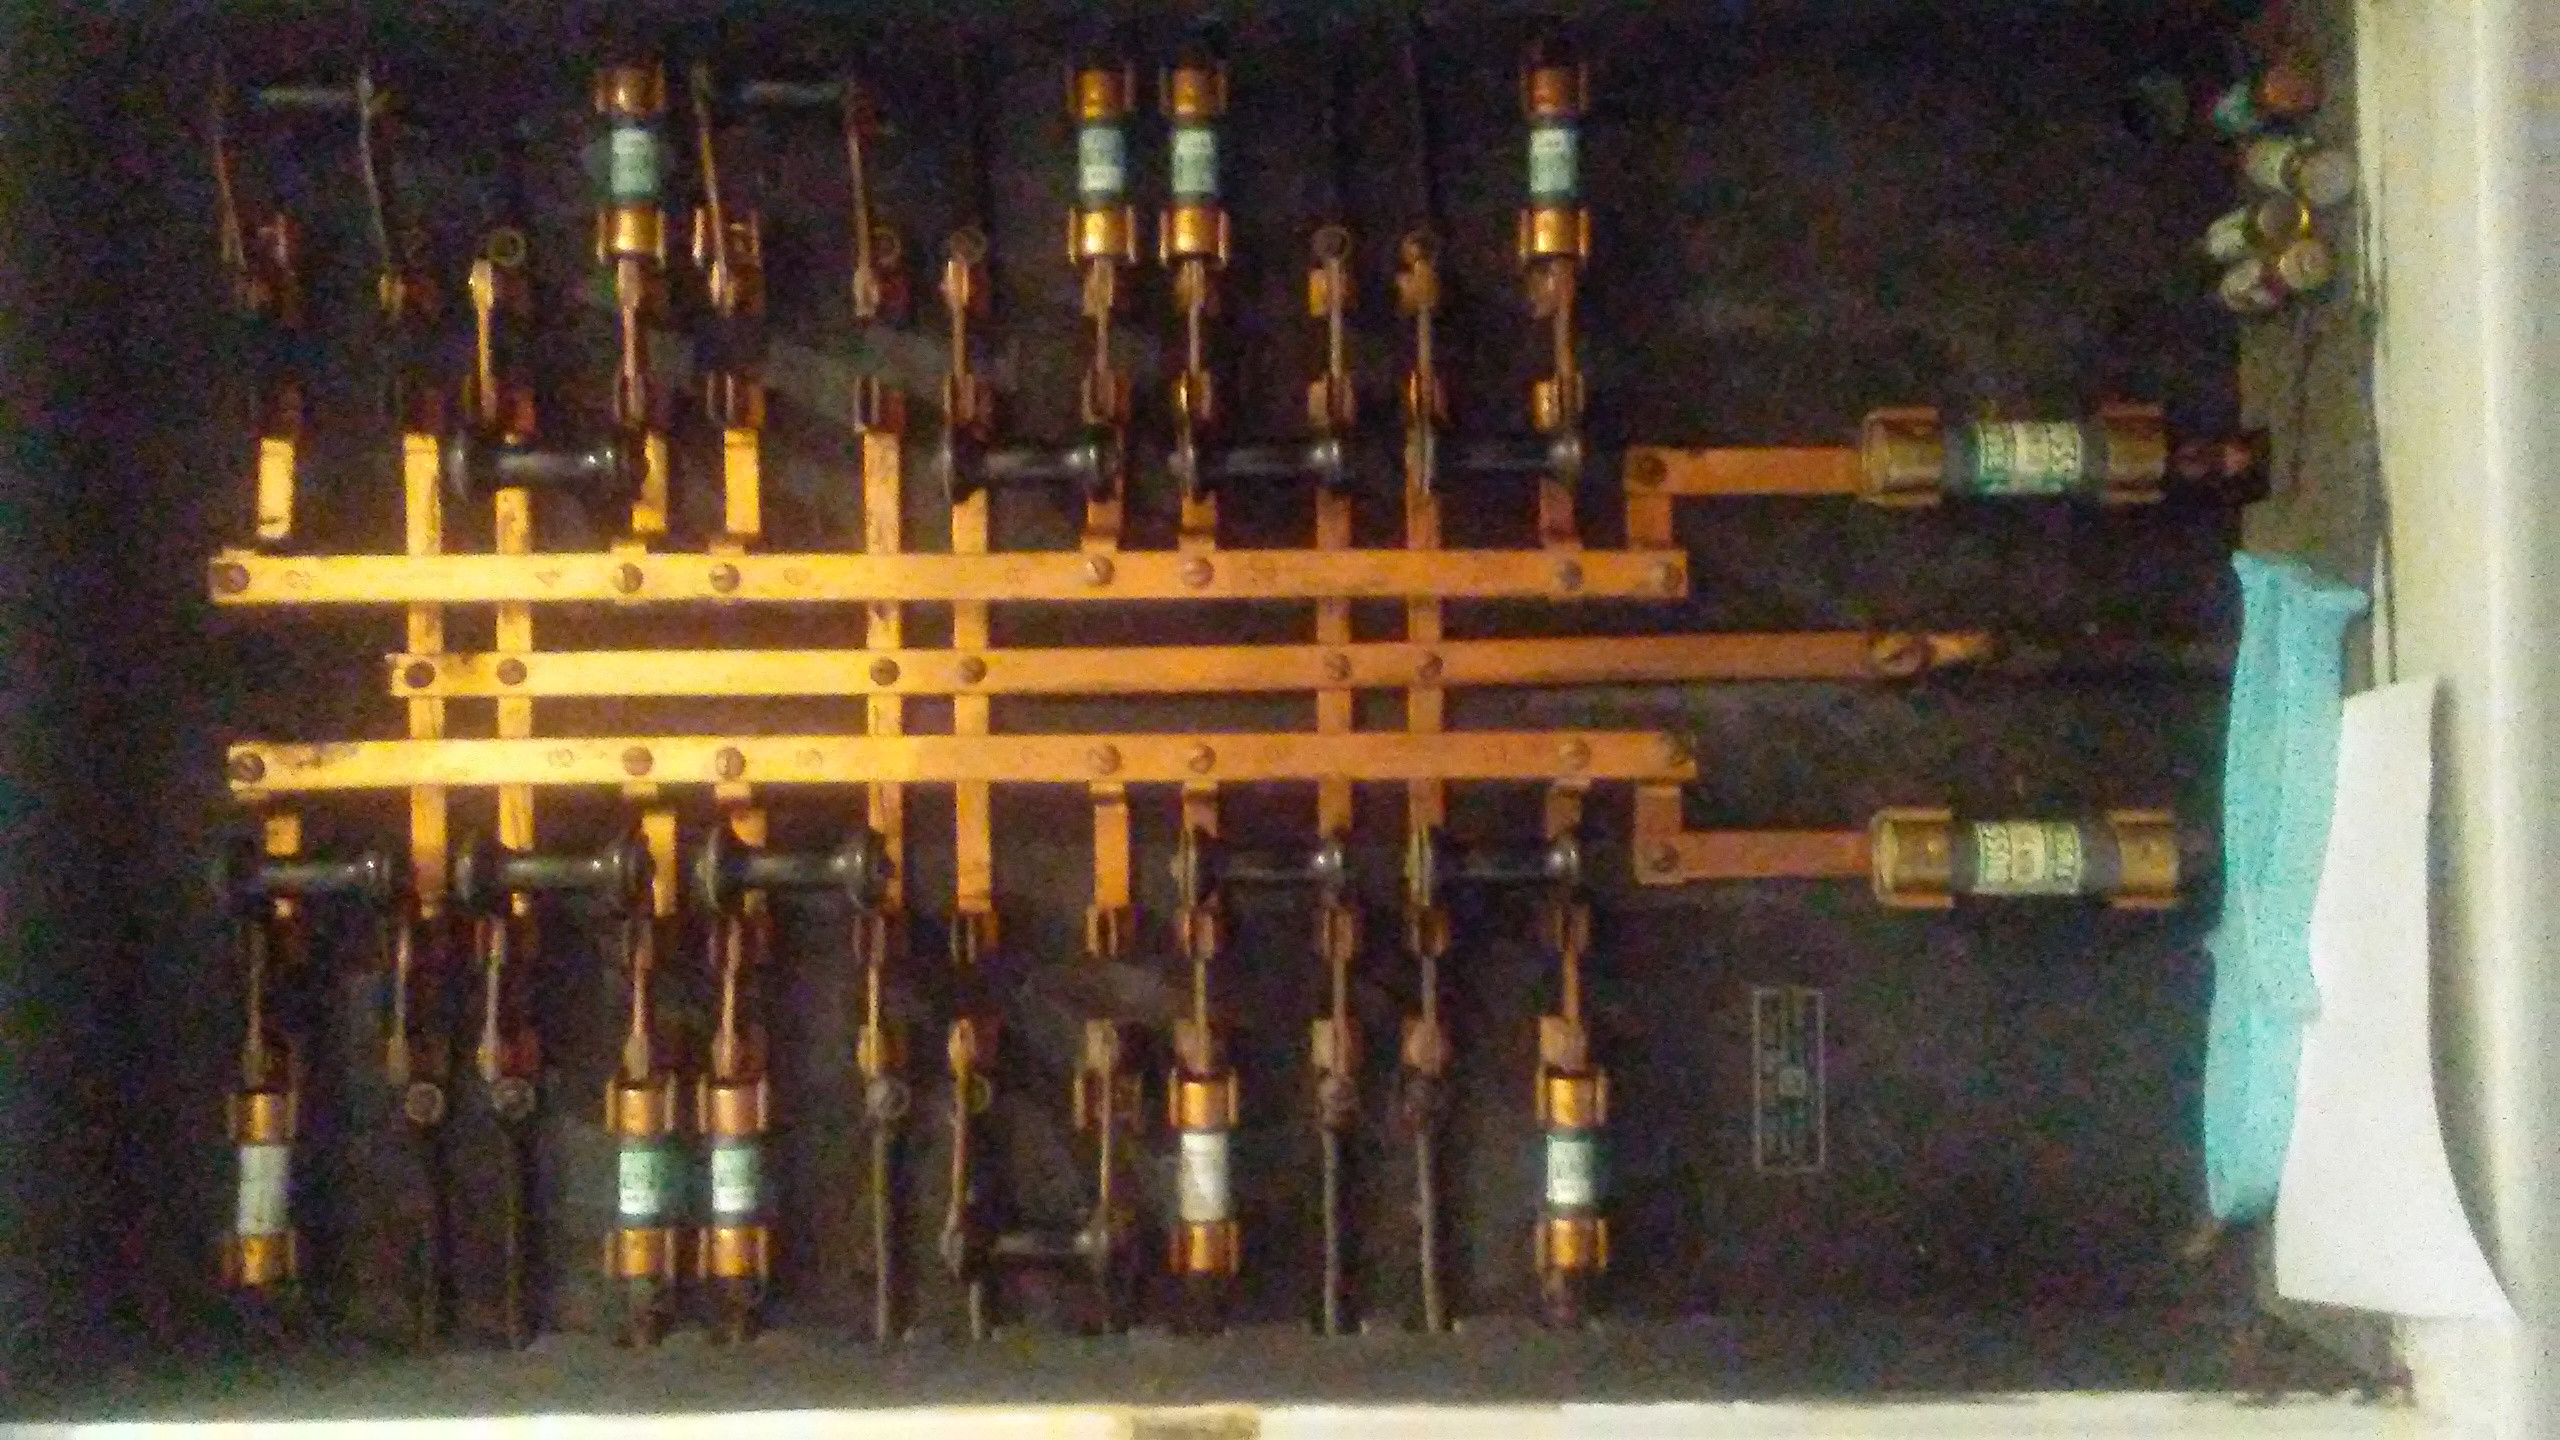 My home was built in 1928. I count 75 lights and 27 wall outlets that still  go though a fusebox that has knife switches. While it seems incredibly old  ...